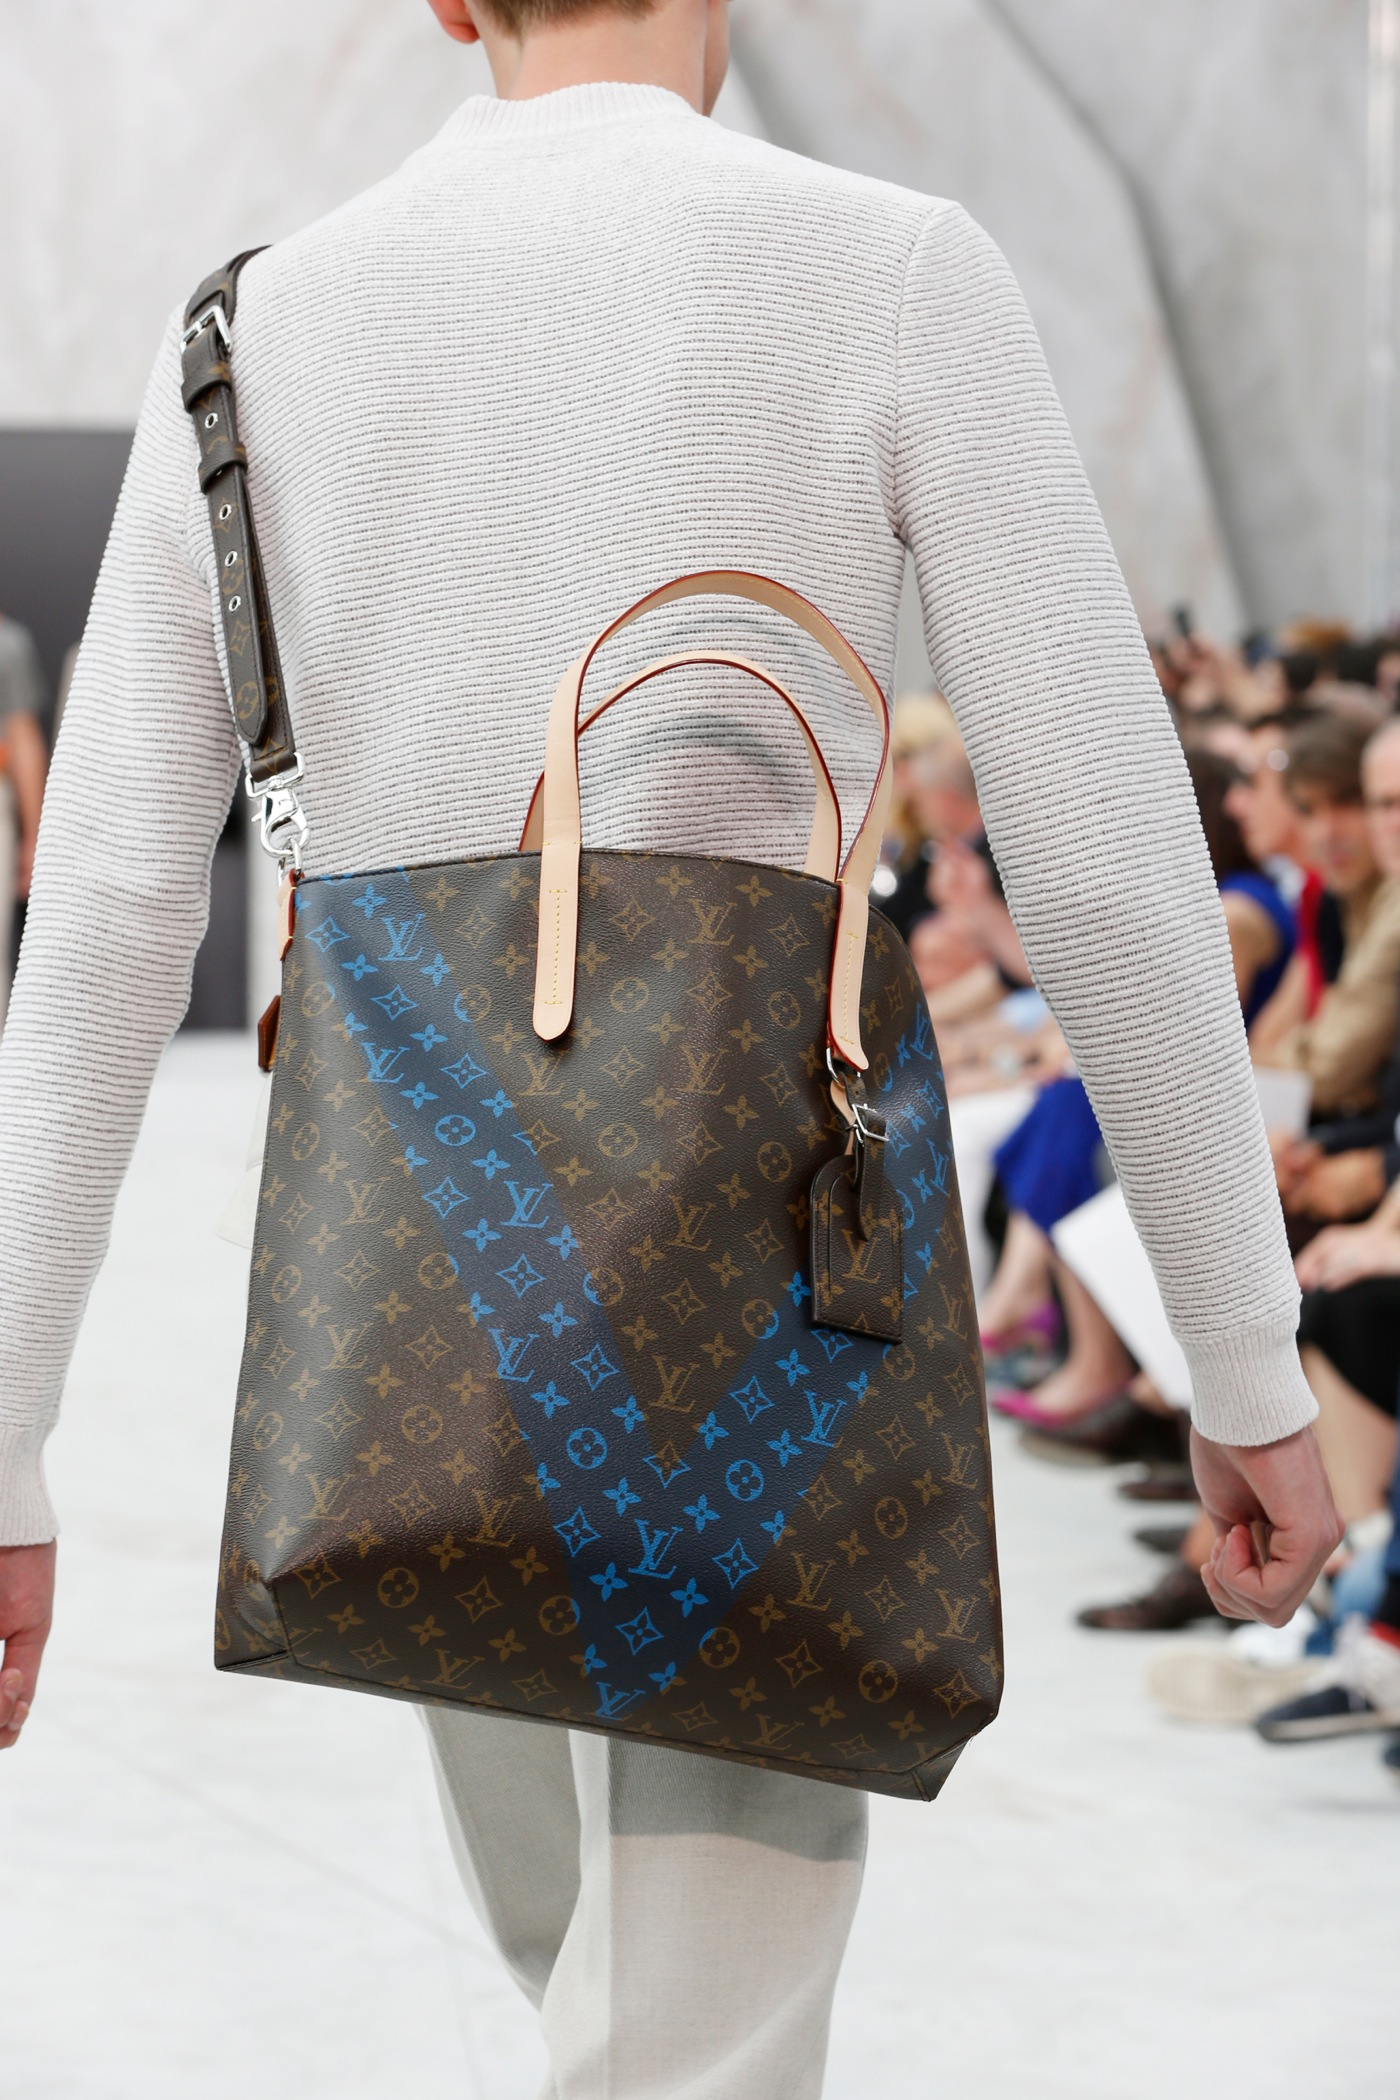 Backstage at the Louis Vuitton Menswear Spring 2015 Show 52